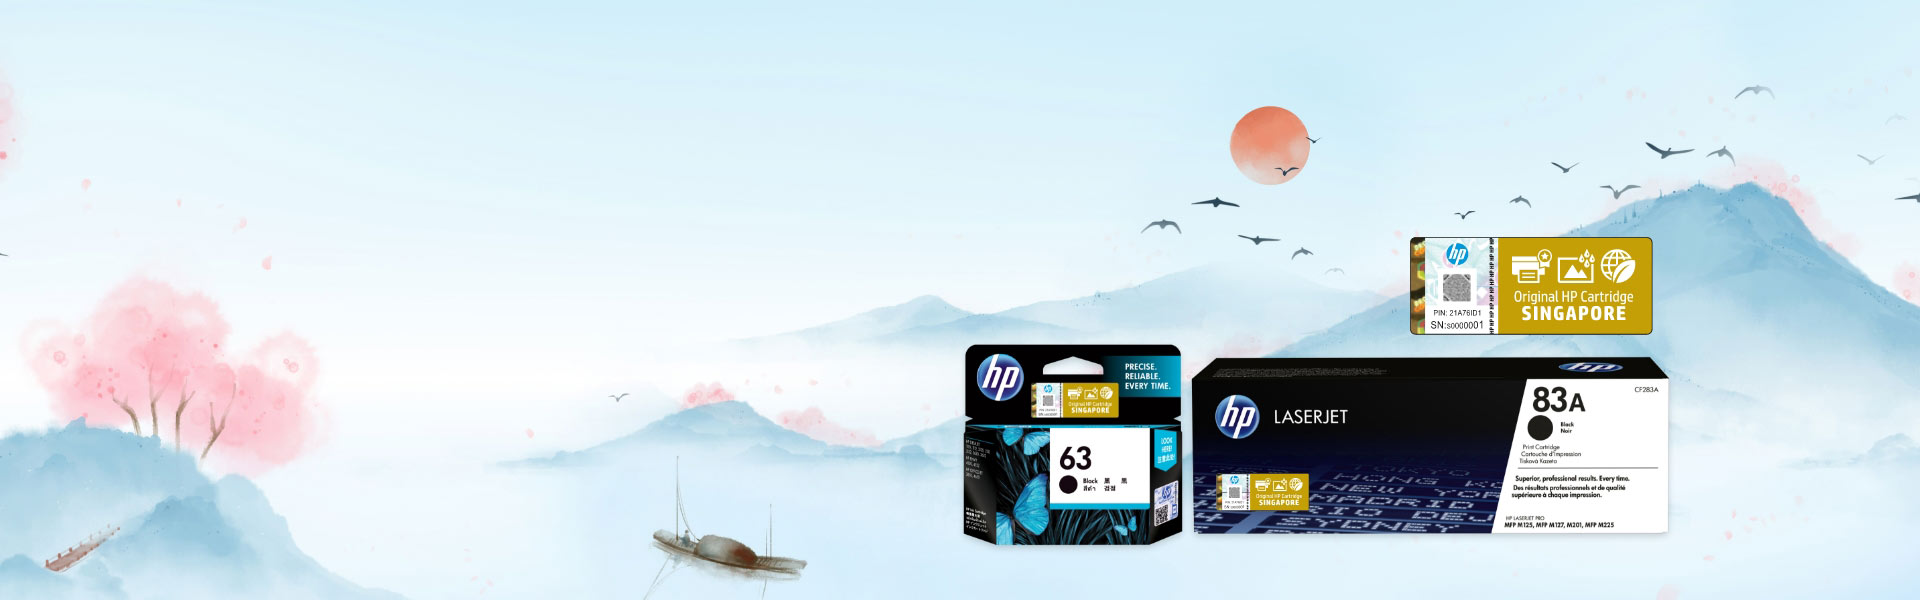 BUY HP ORIGINAL INK & TONERS